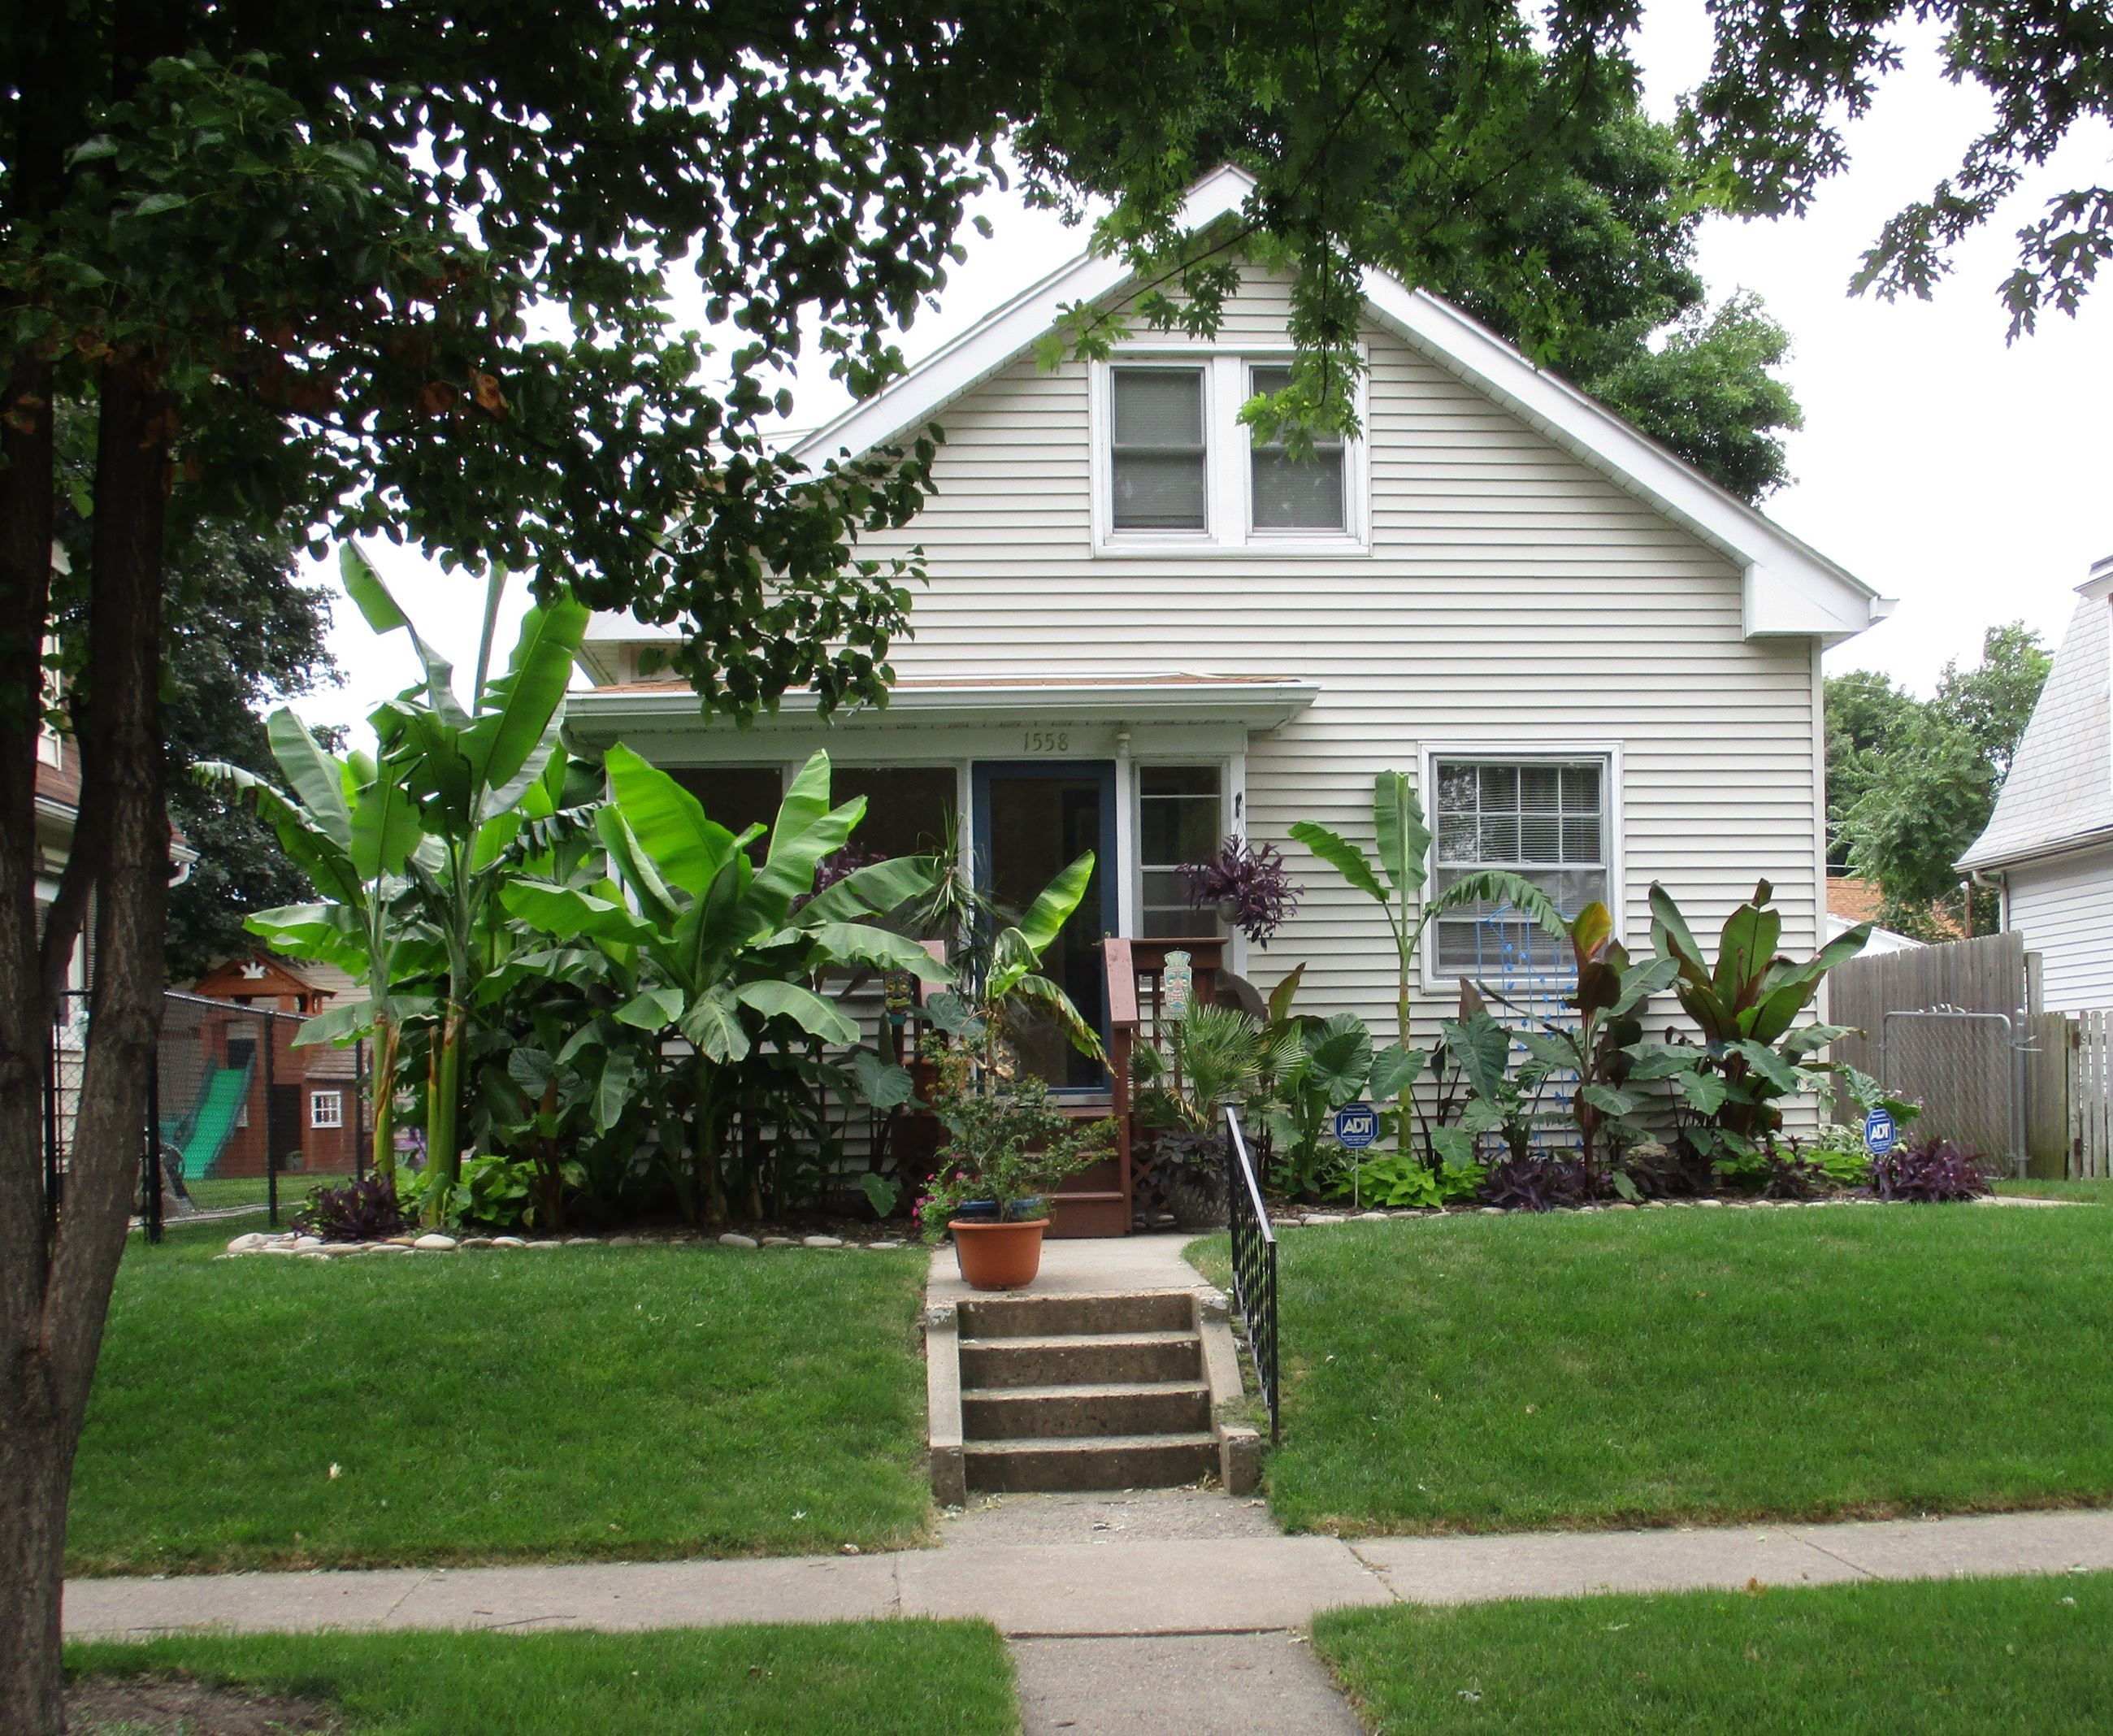 August Yard of the Month, 1558 43rd Street